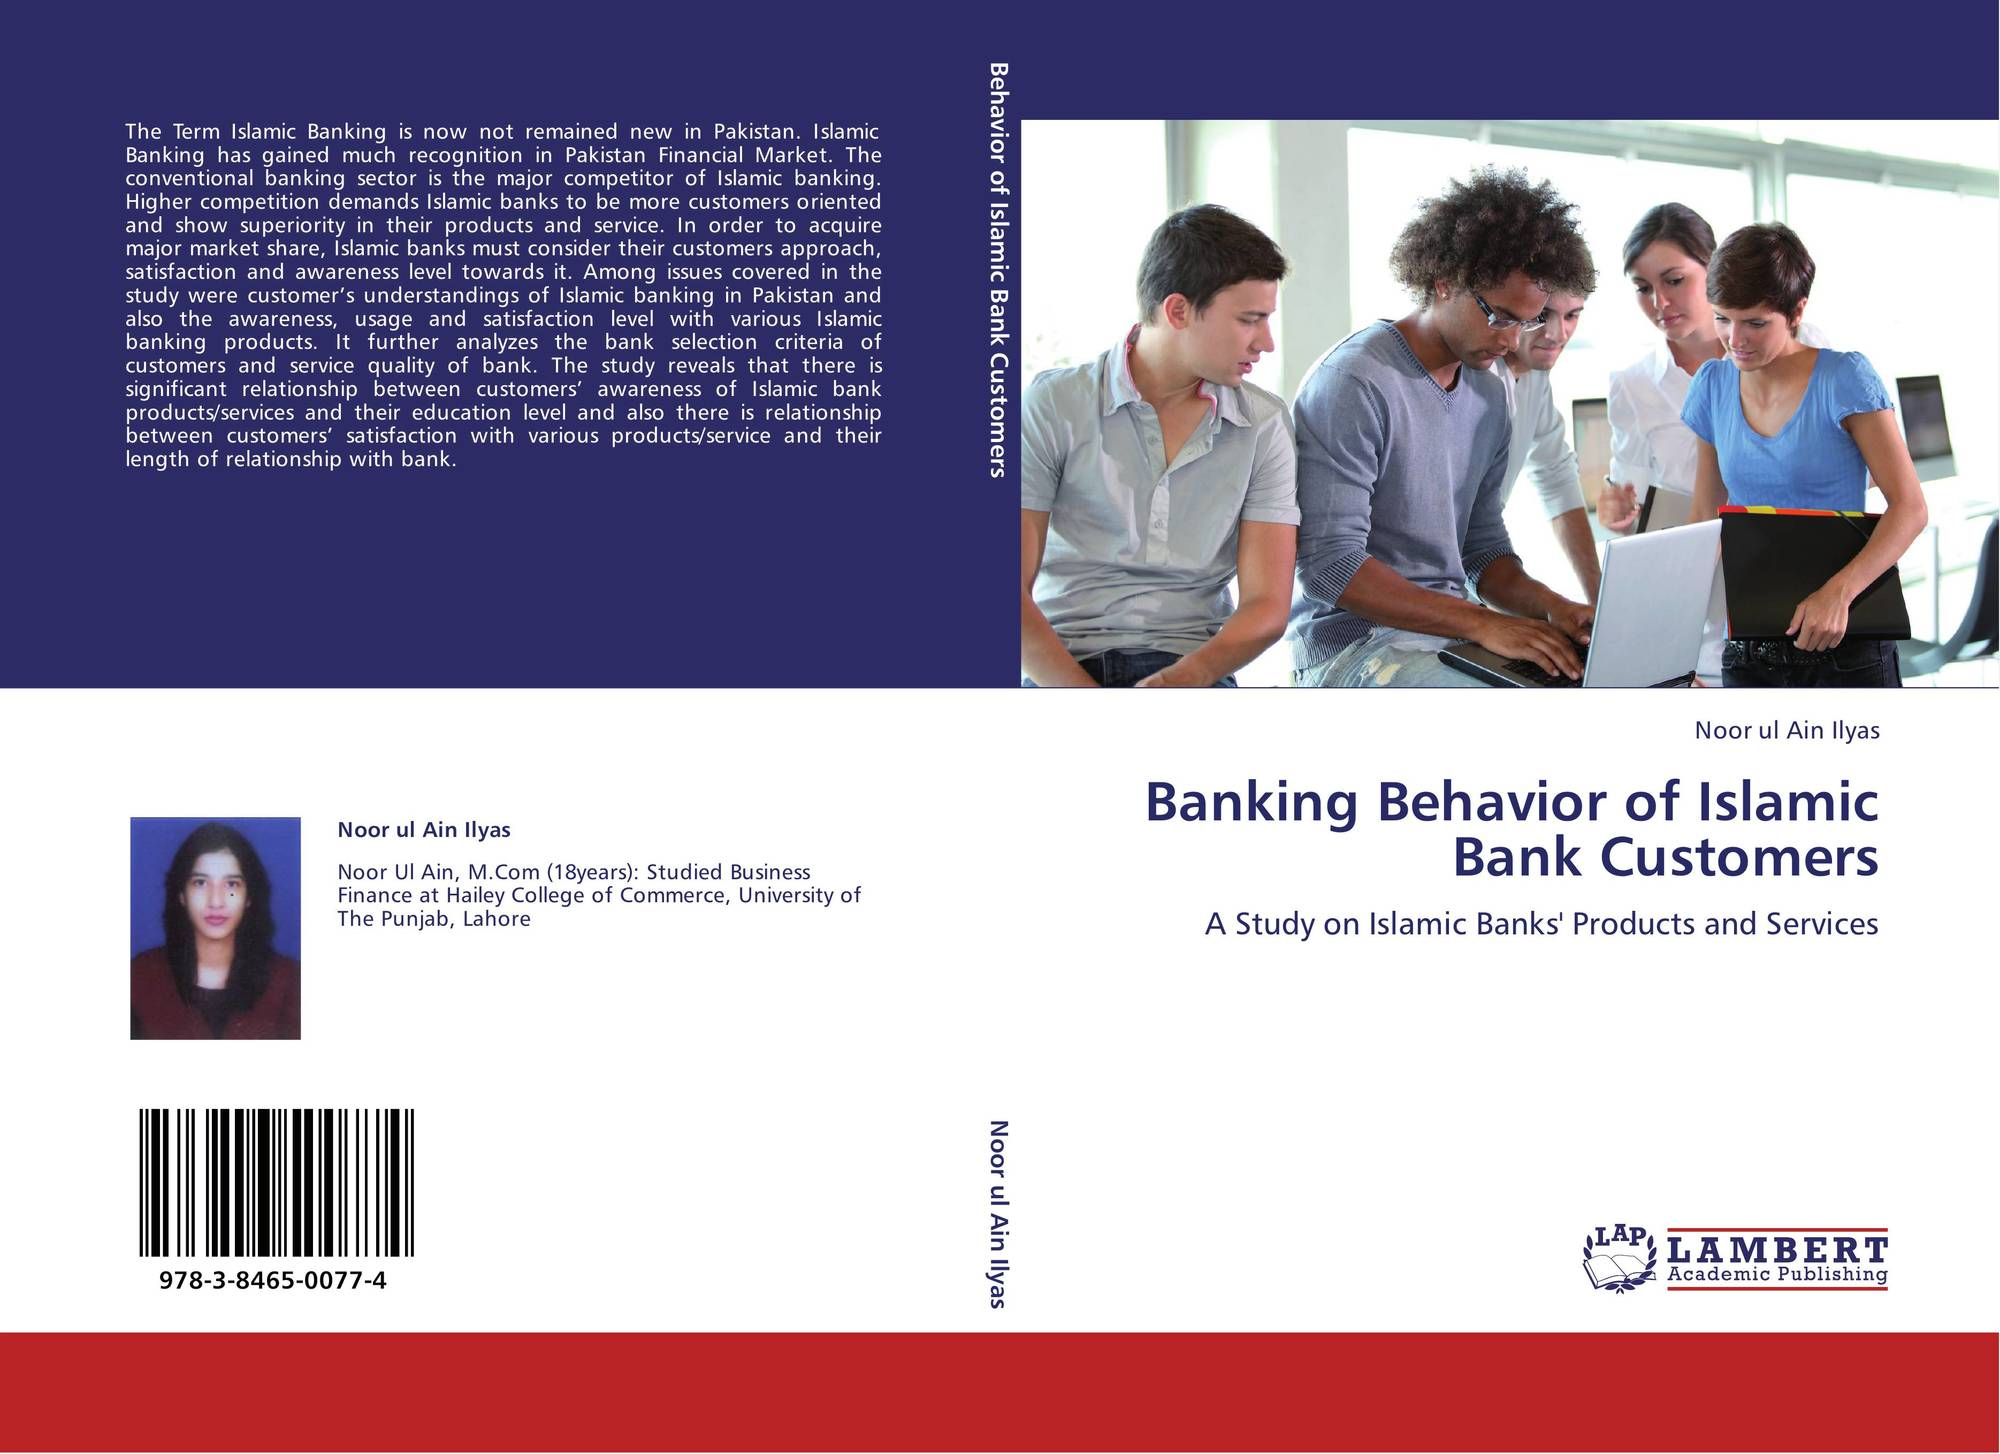 consumer behaviour towards the islamic banking Islamic banking and finance are areas that have attracted attention, especially after the recent global financial crisis while the existing literature highlights a significant shift in consumers' behaviour with regard to bank selection, it does not investigate the motives behind such moves.